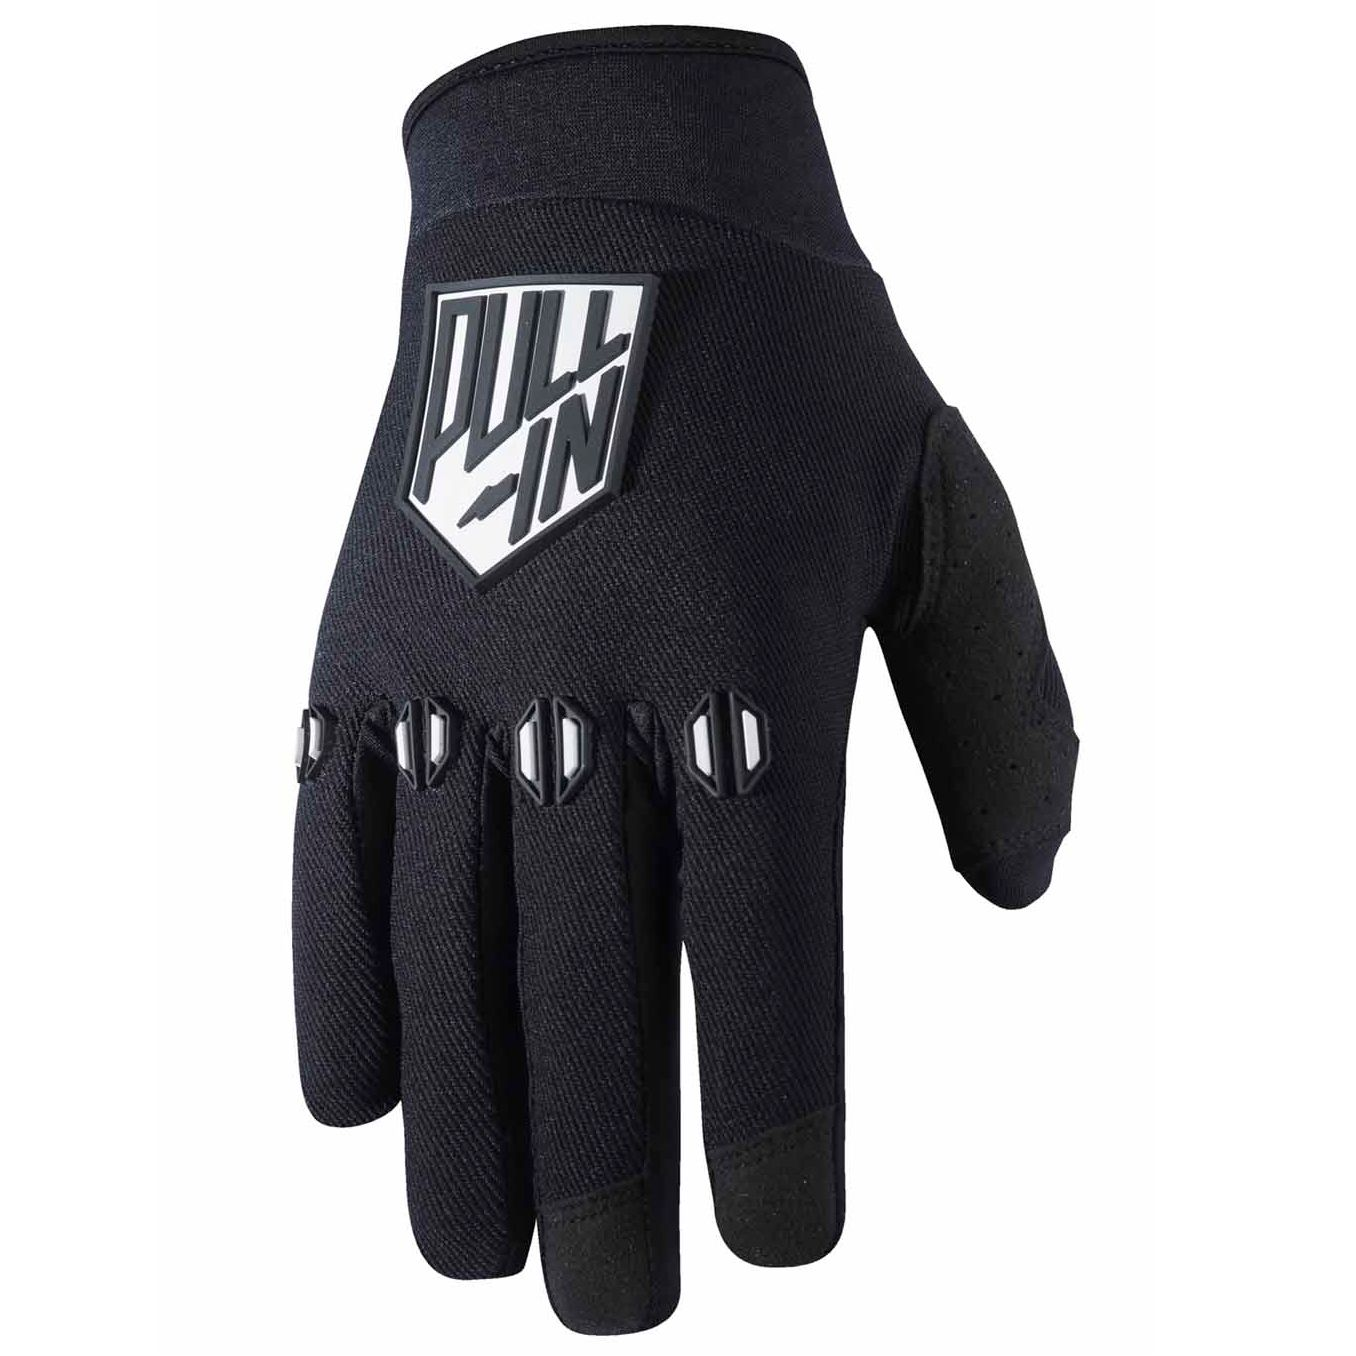 Gants Cross Pull-in Race - Noir -